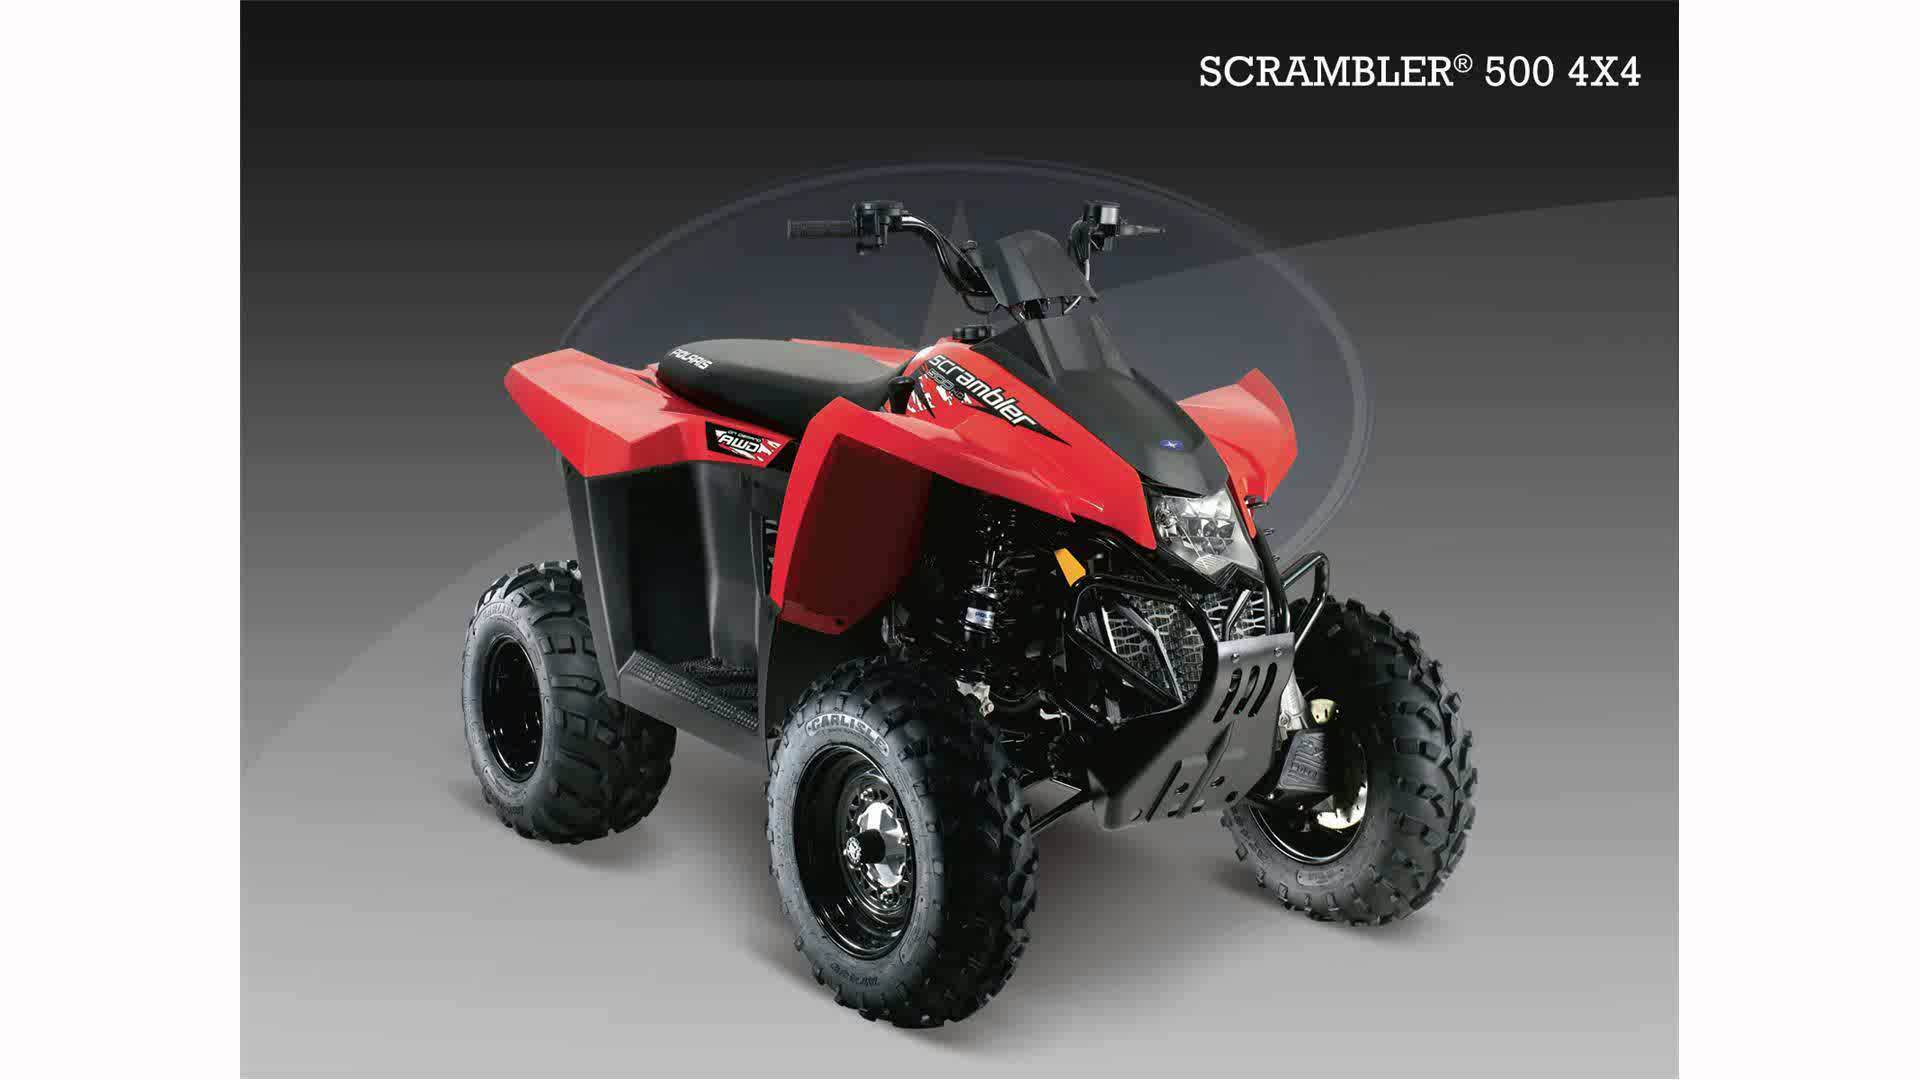 Polaris Scrambler 500 4x4 2006 images #121170